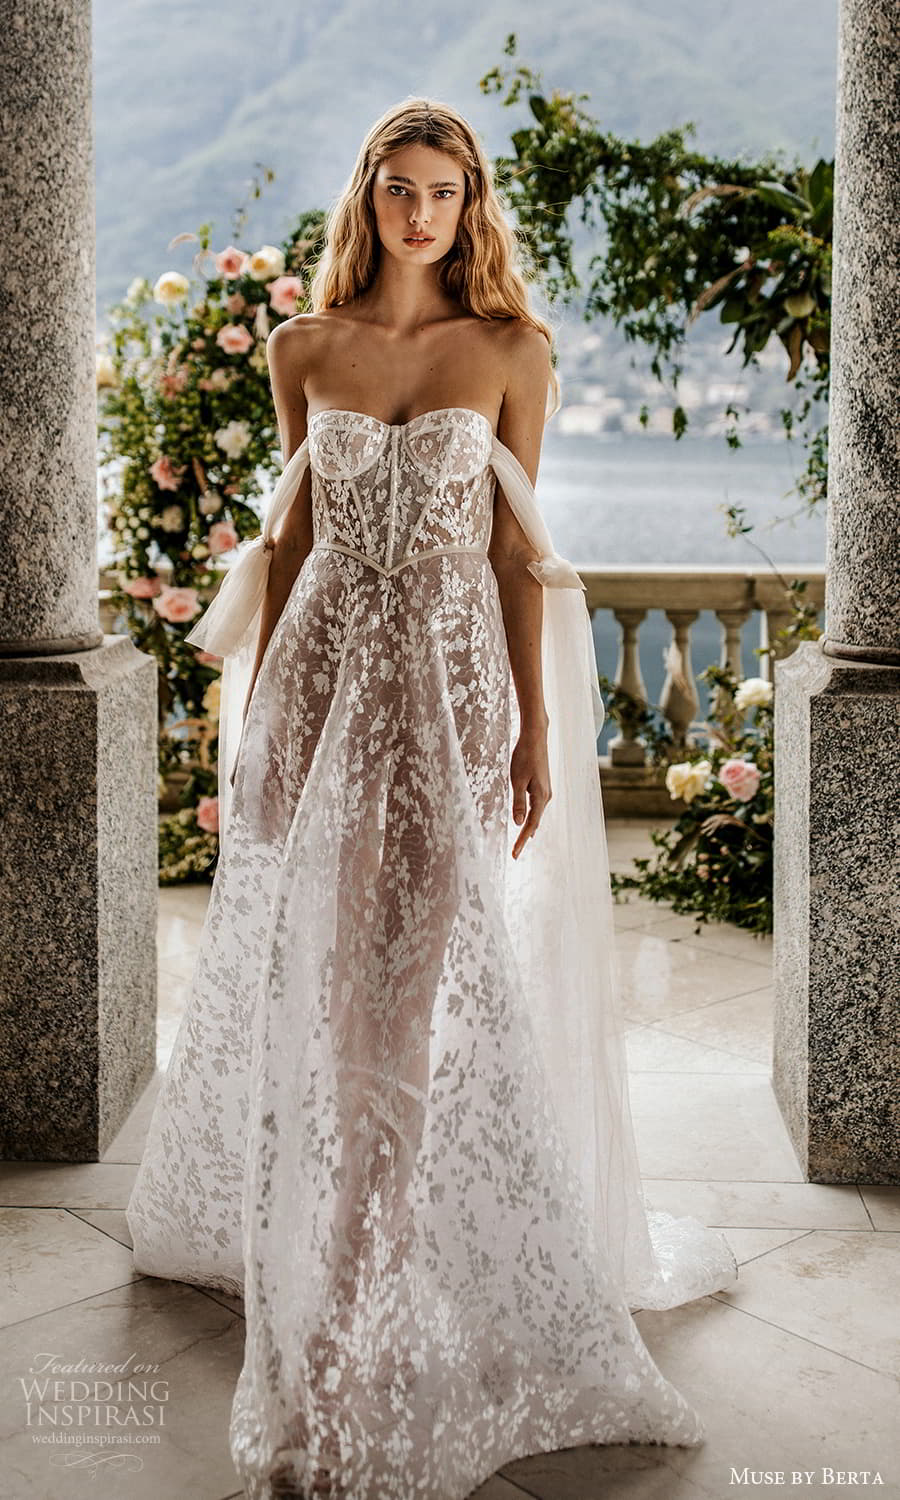 muse by berta spring 2022 bridal off shoulder straps sweetheart neckline fully embellished lace a line ball gown wedding dress chapel train ( 16) mv